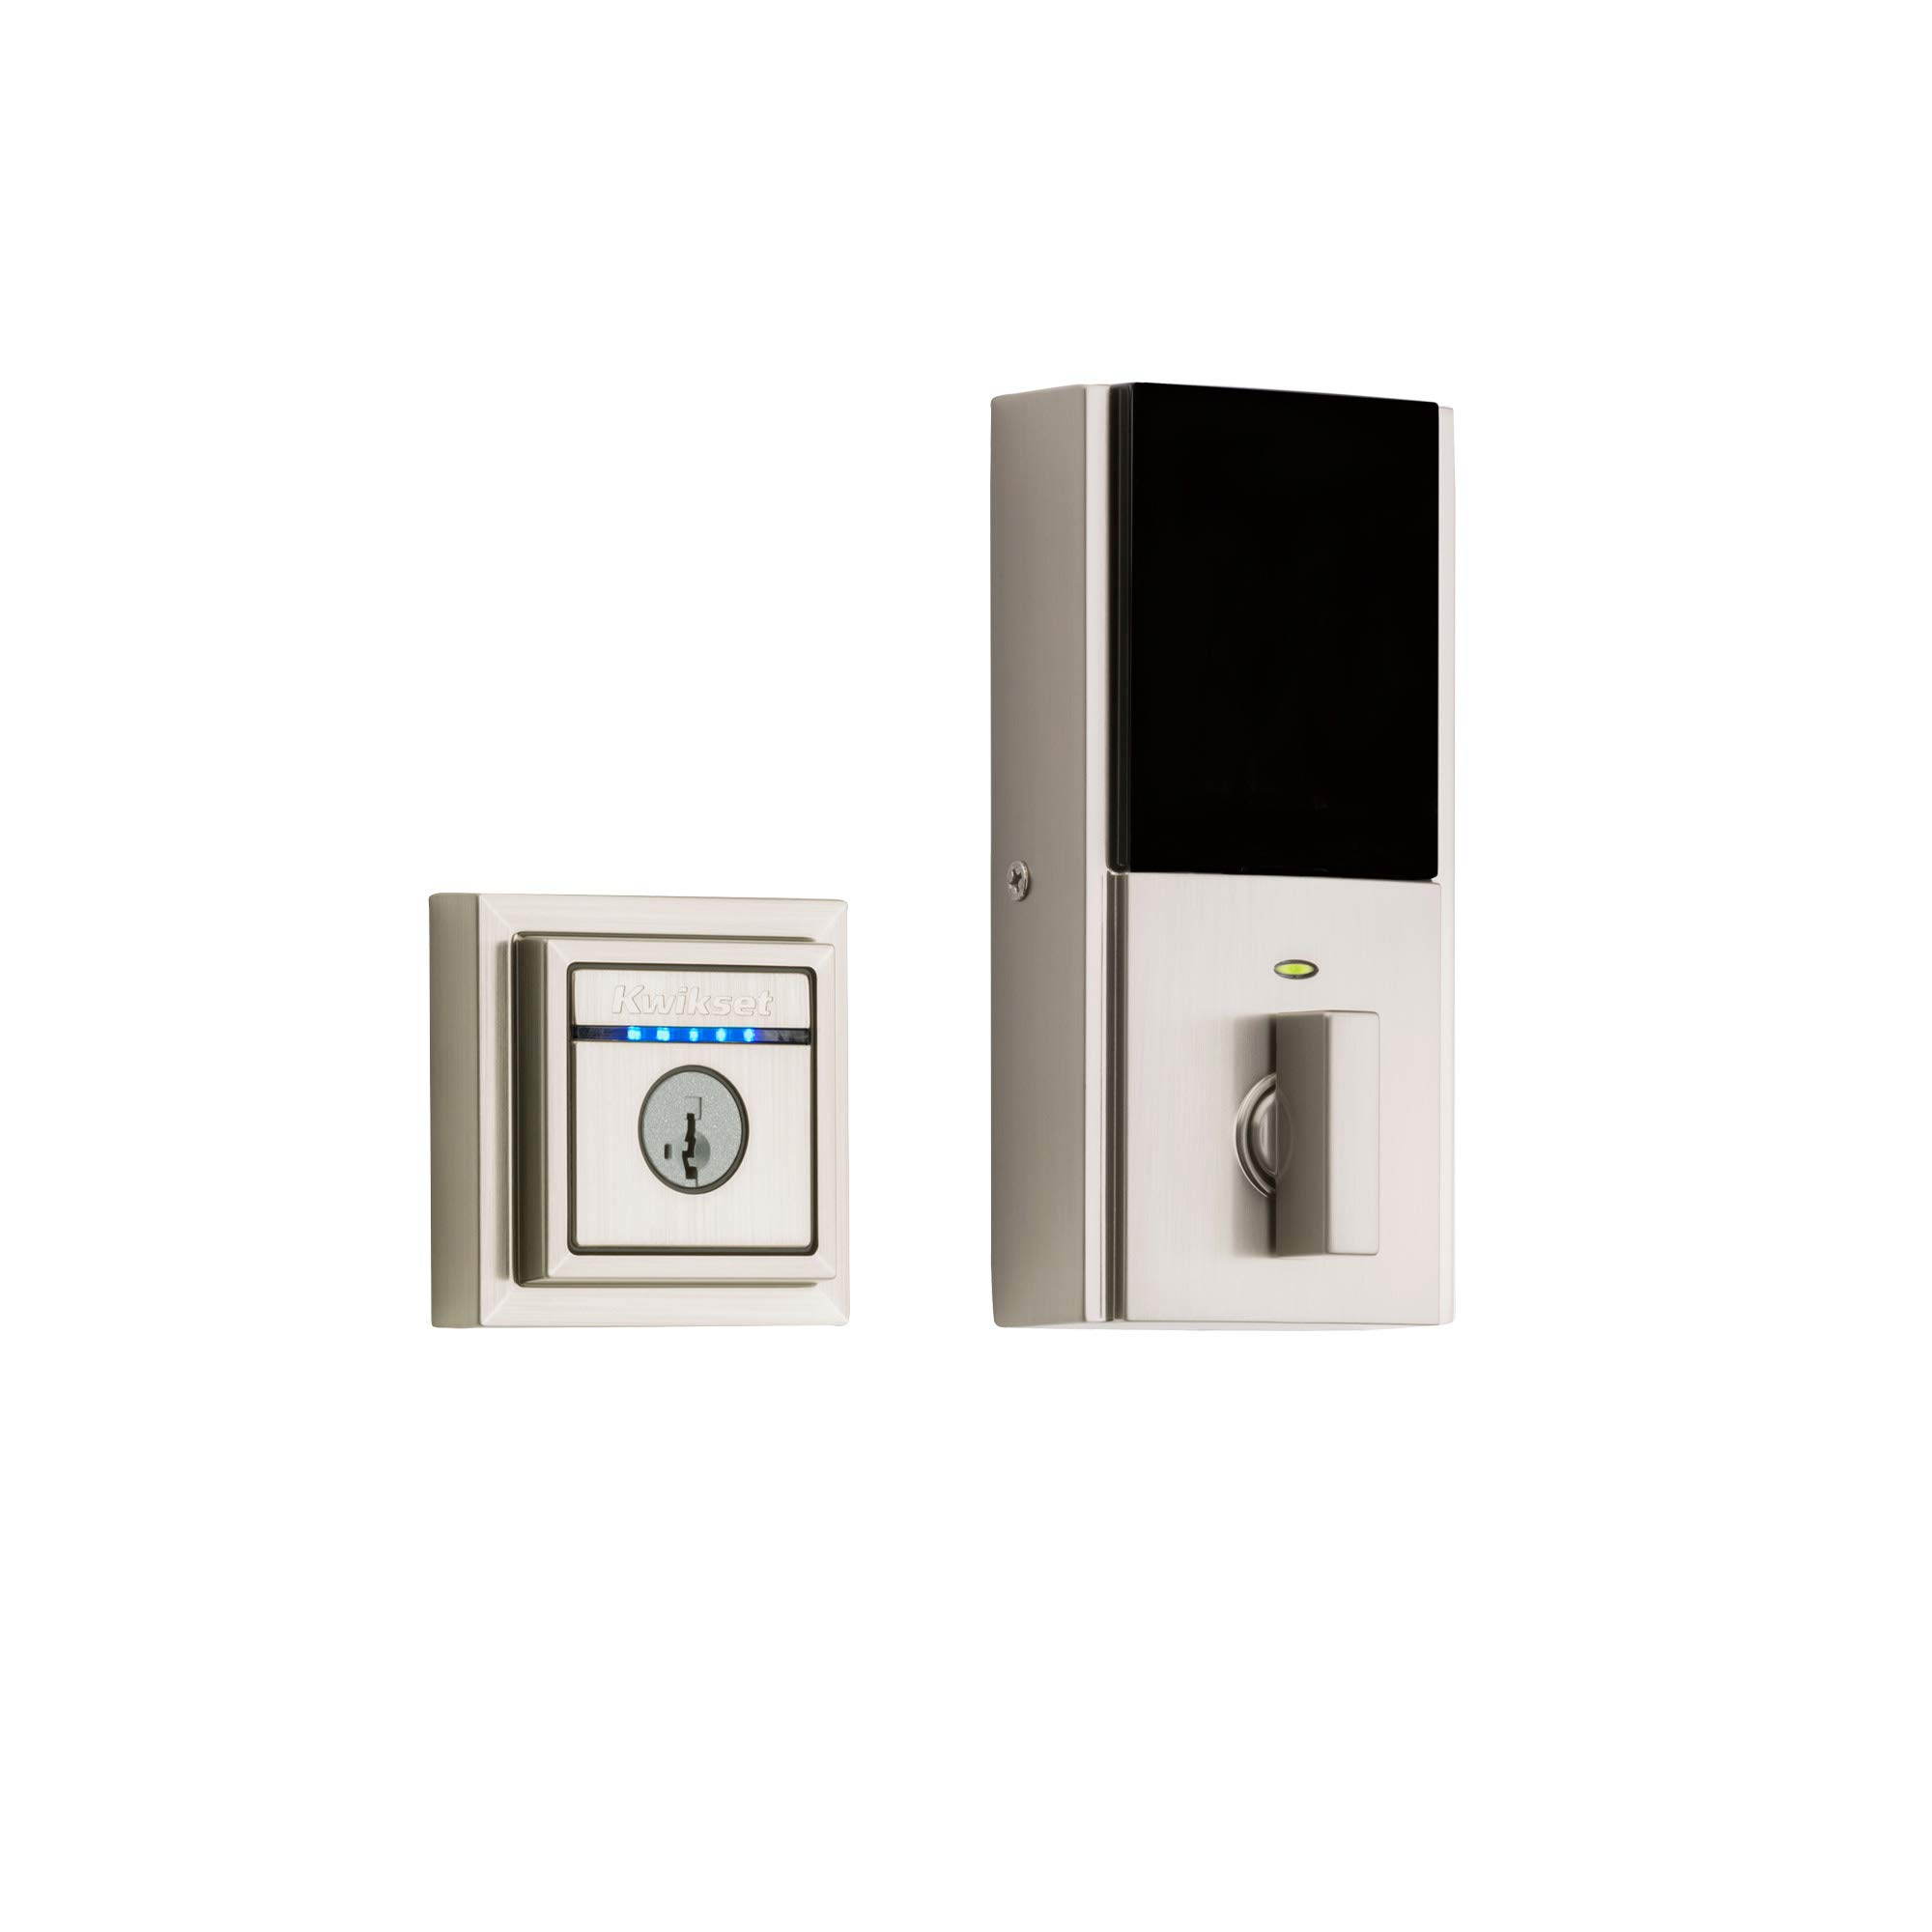 Kwikset 99250-206 Kevo 2nd Gen Contemporary Square Single Cylinder Touch-to-Open Bluetooth Deadbolt Satin Nickel by Kwikset (Image #3)